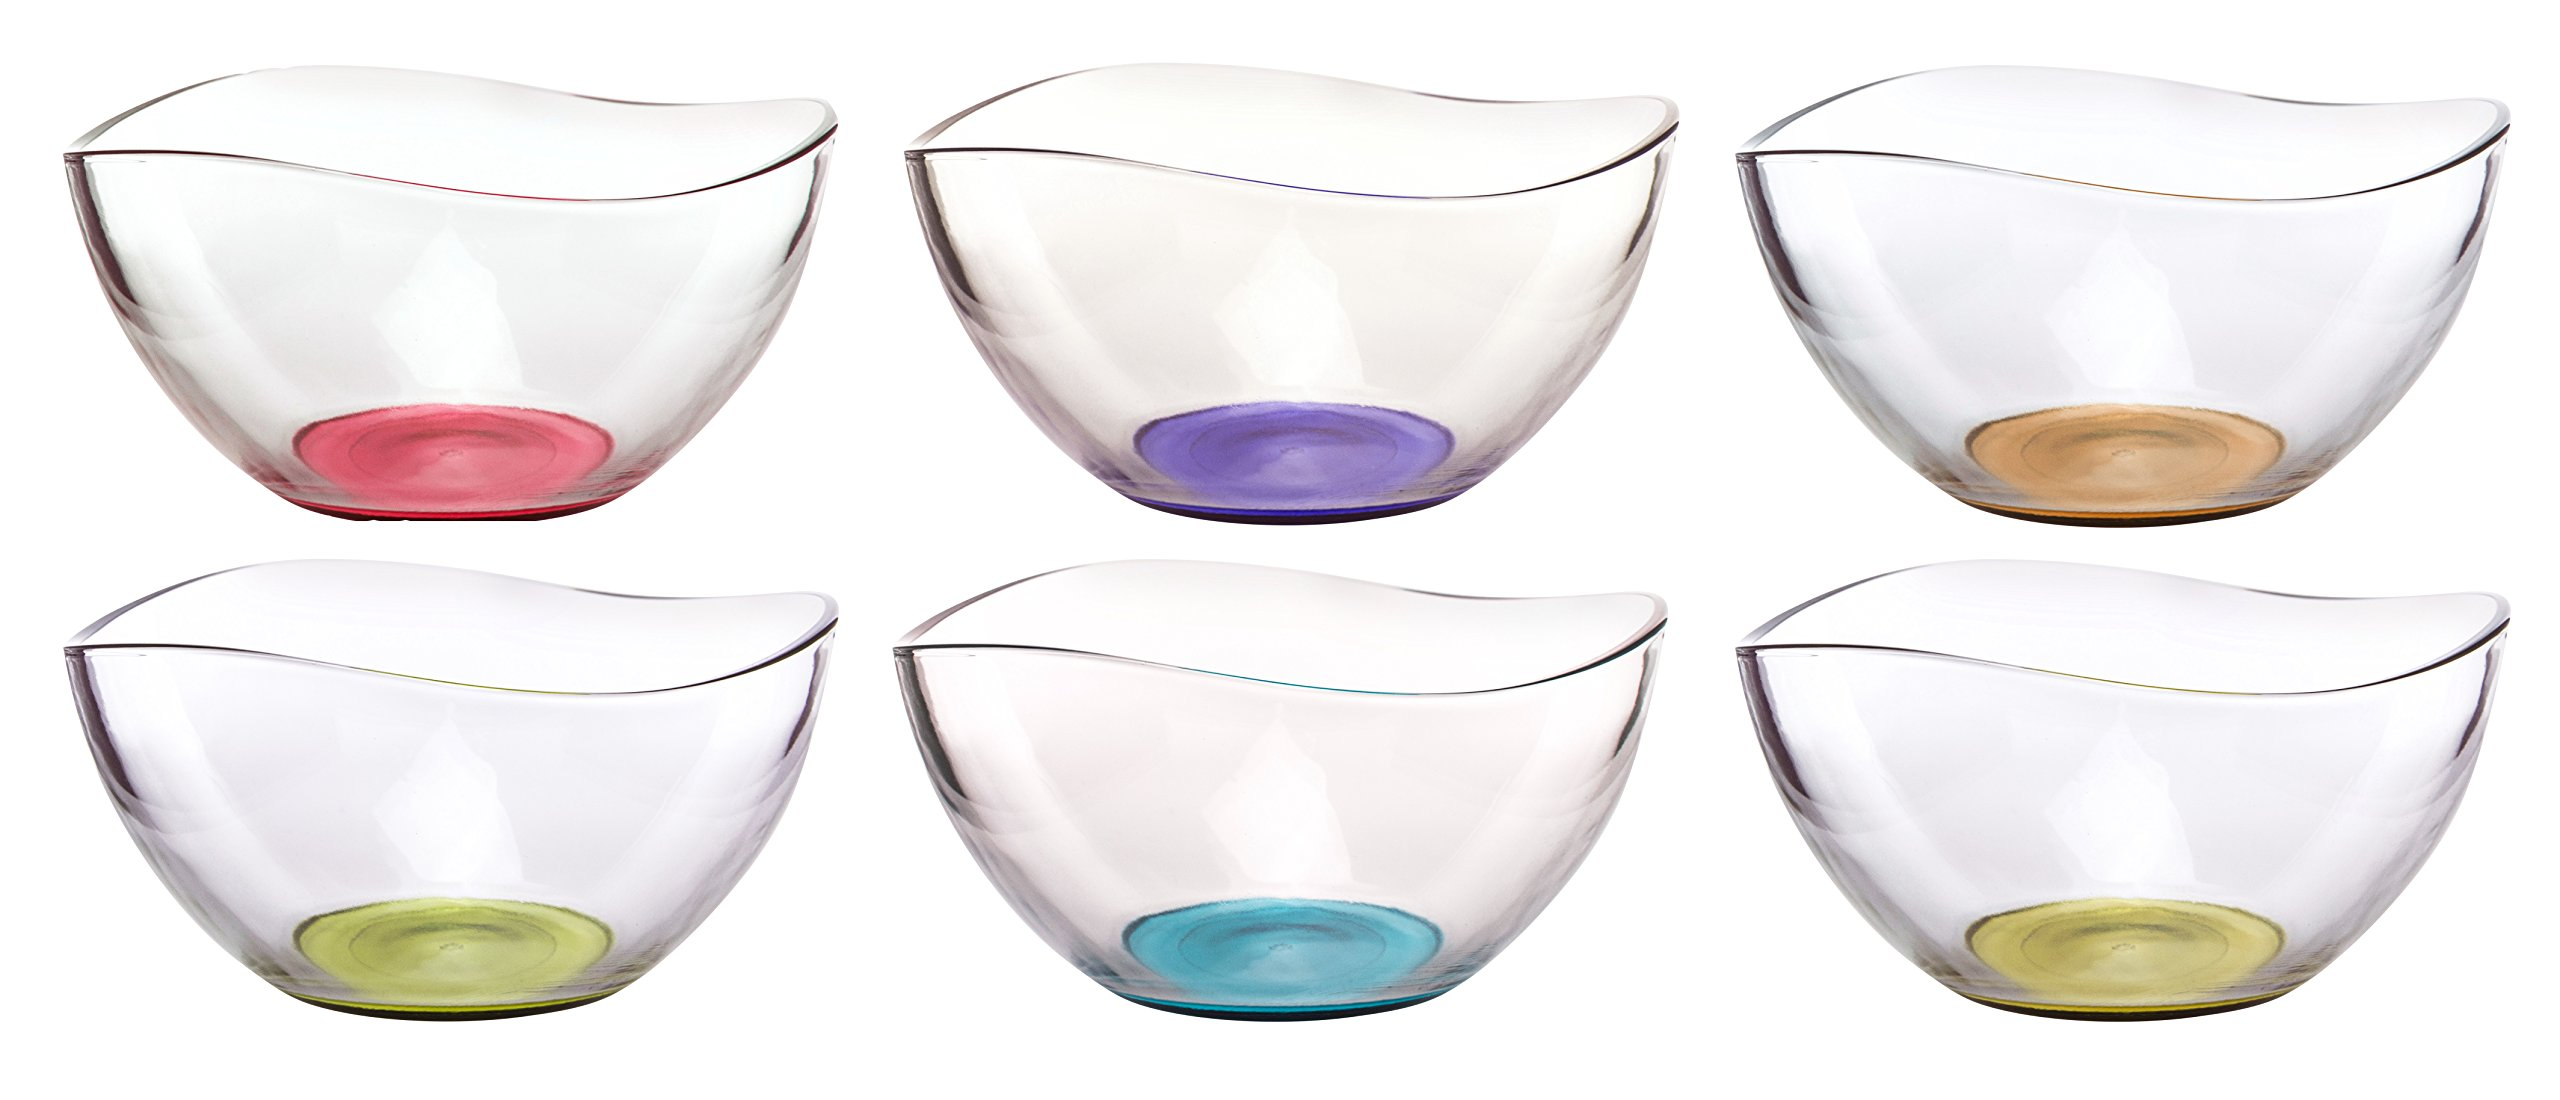 Mini Colored Glass Wavy Serving/Prep Bowls, 10 1/2 Ounce, Set of 6 - 5'' x 5'' x 2.5'' each